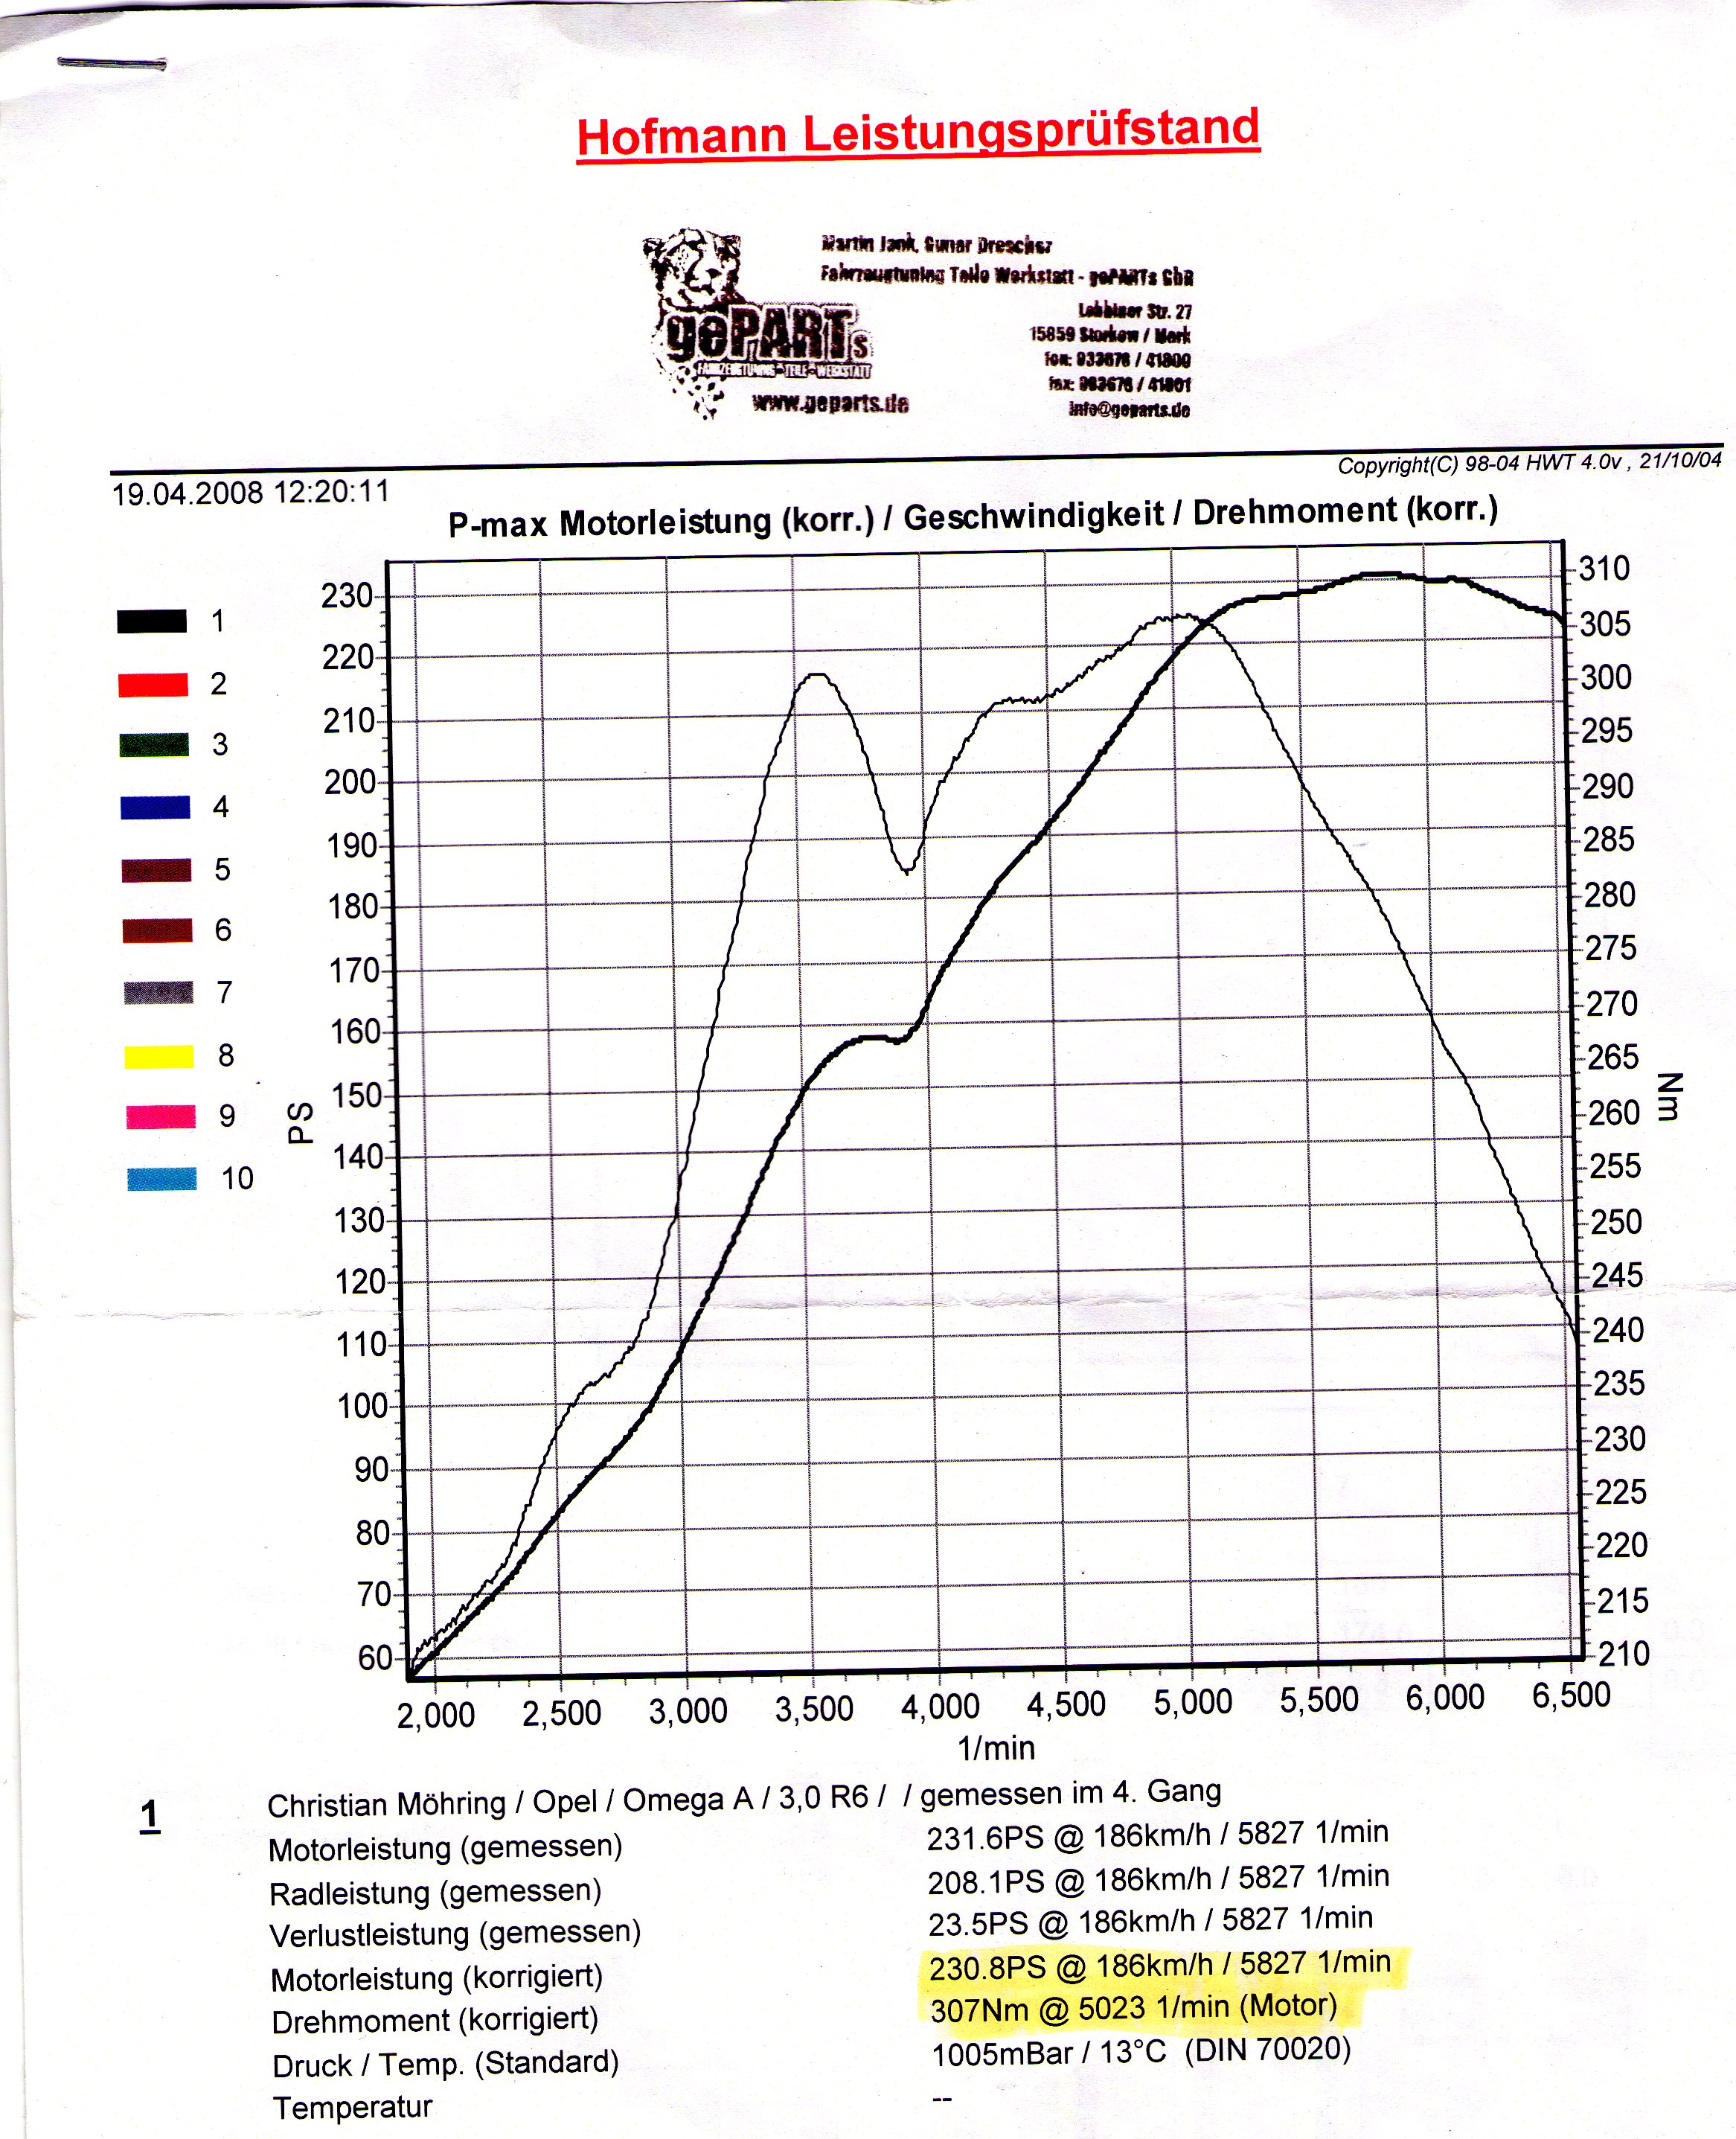 1992 opel omega omega 3000 24v 1  4 mile drag racing